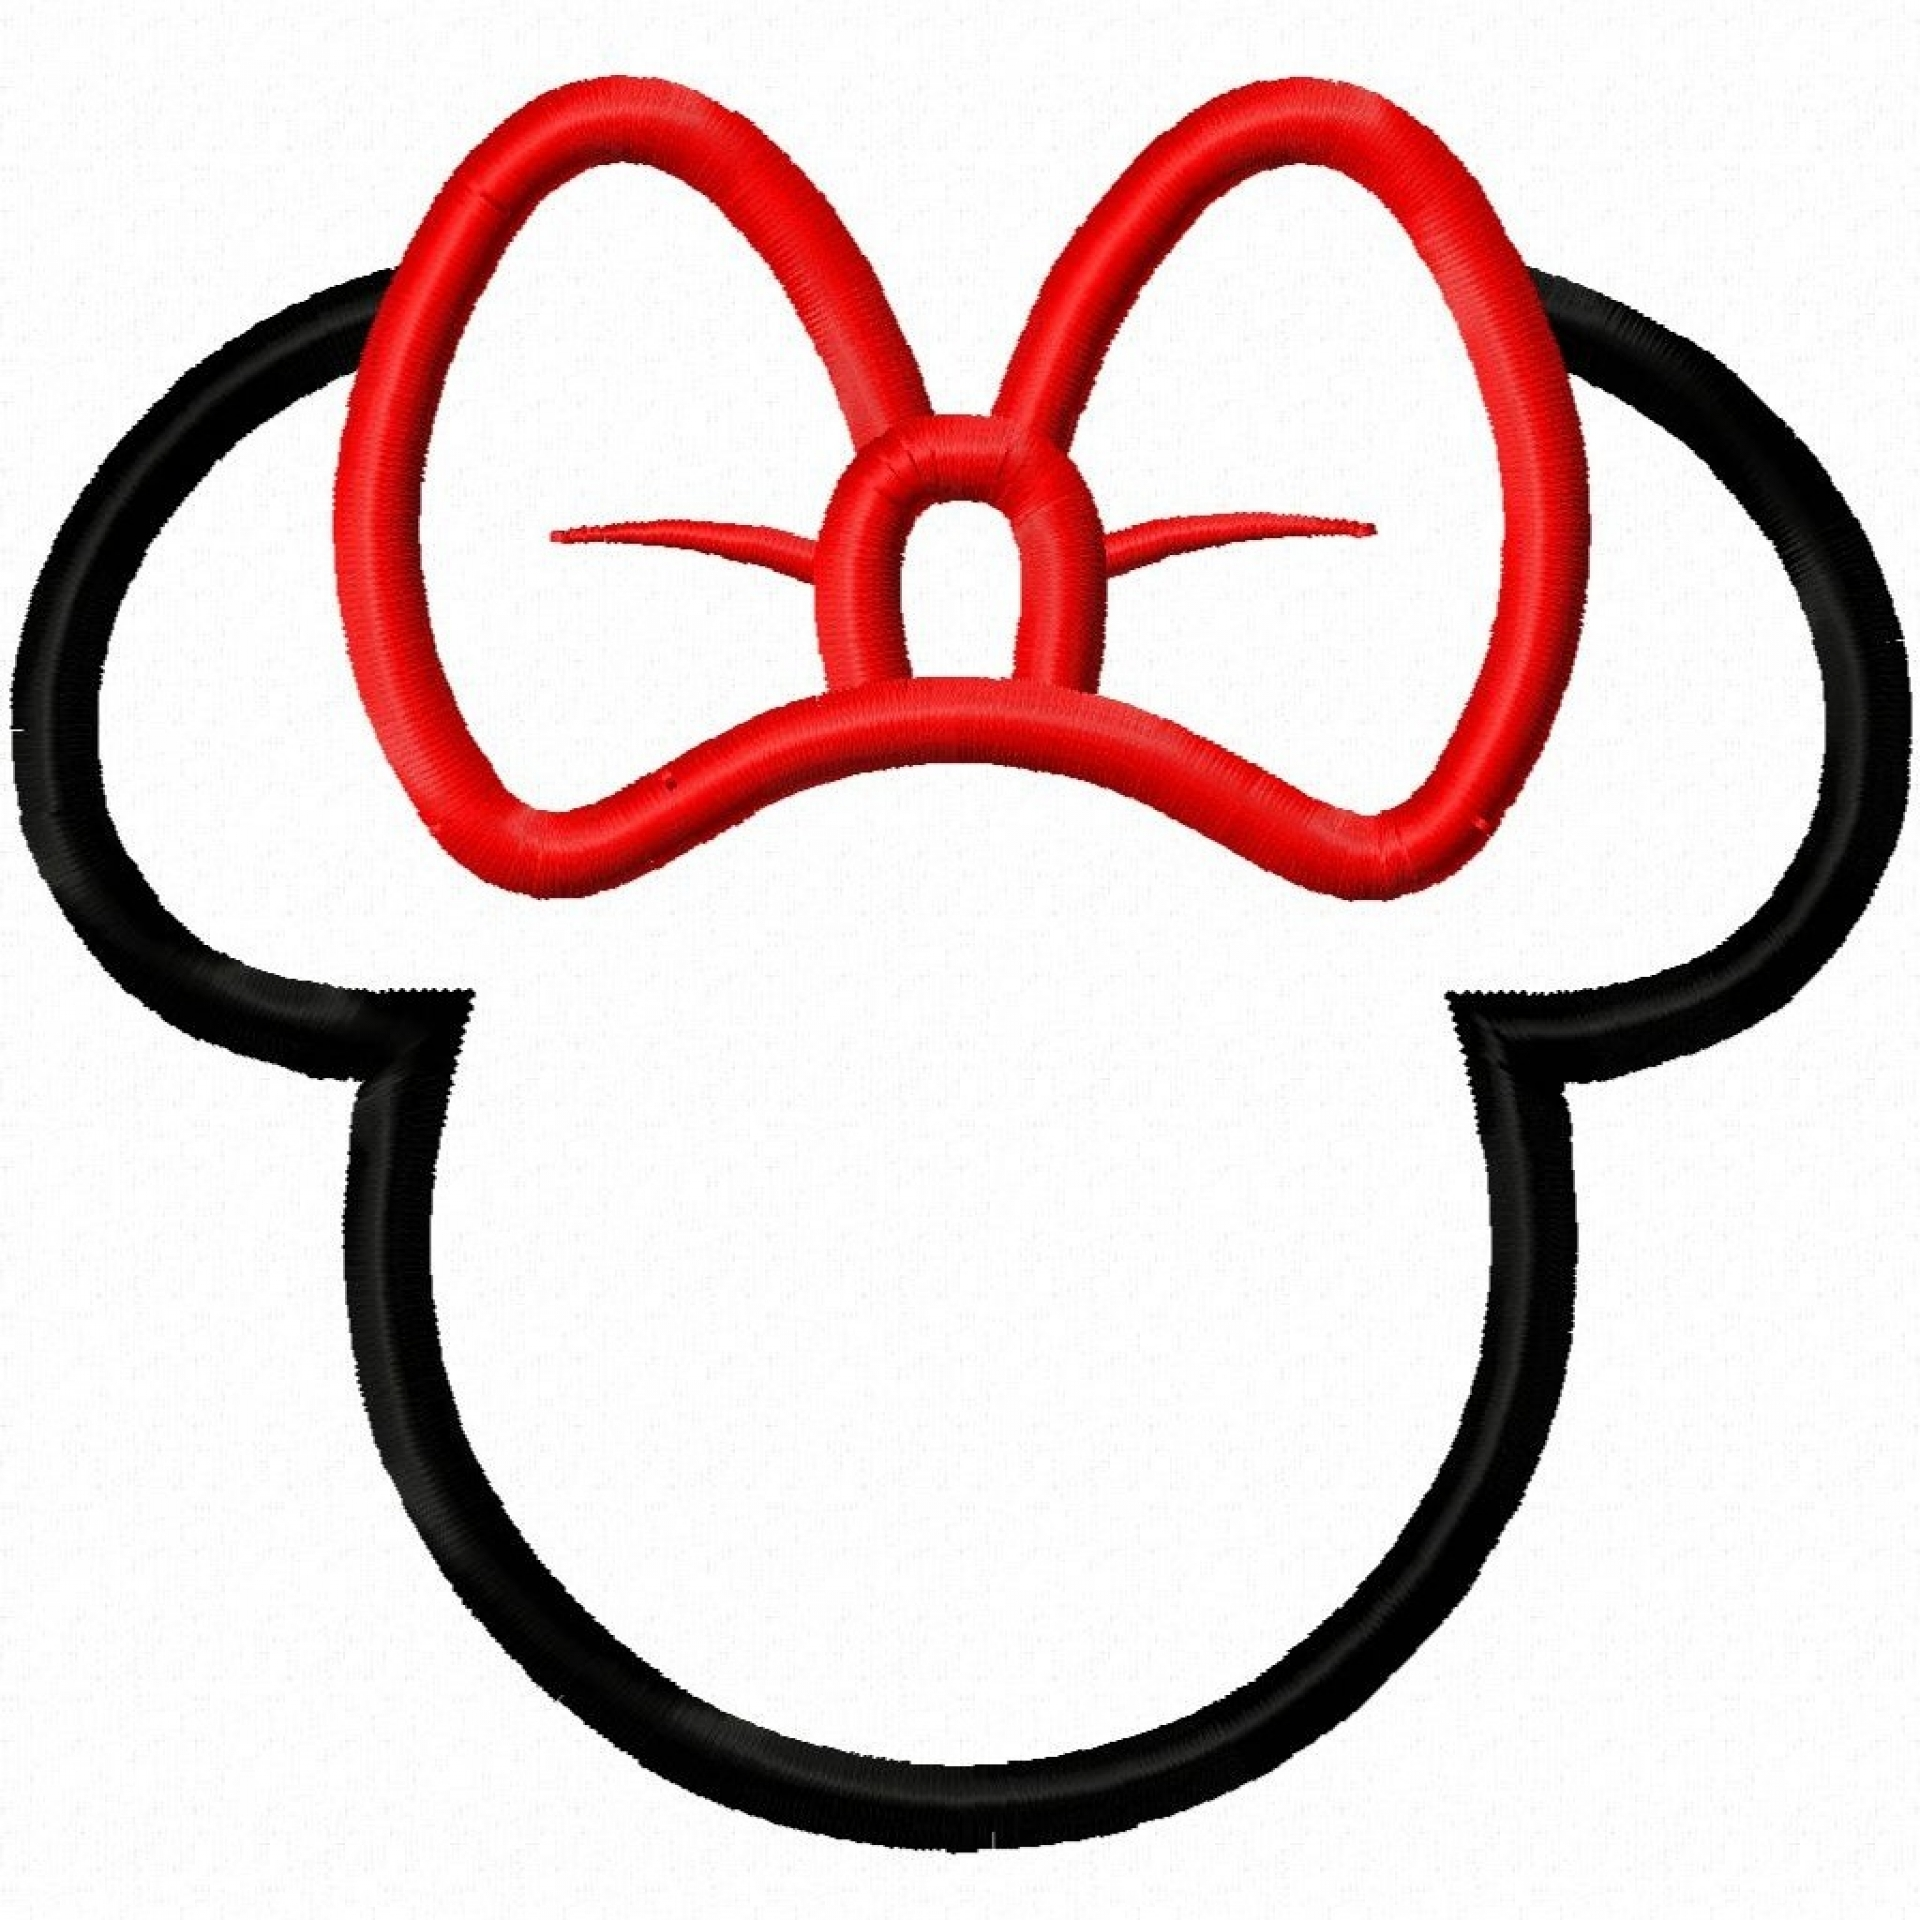 1920x1920 Minnie Mouse Ear Clip Art Free Clipart Images